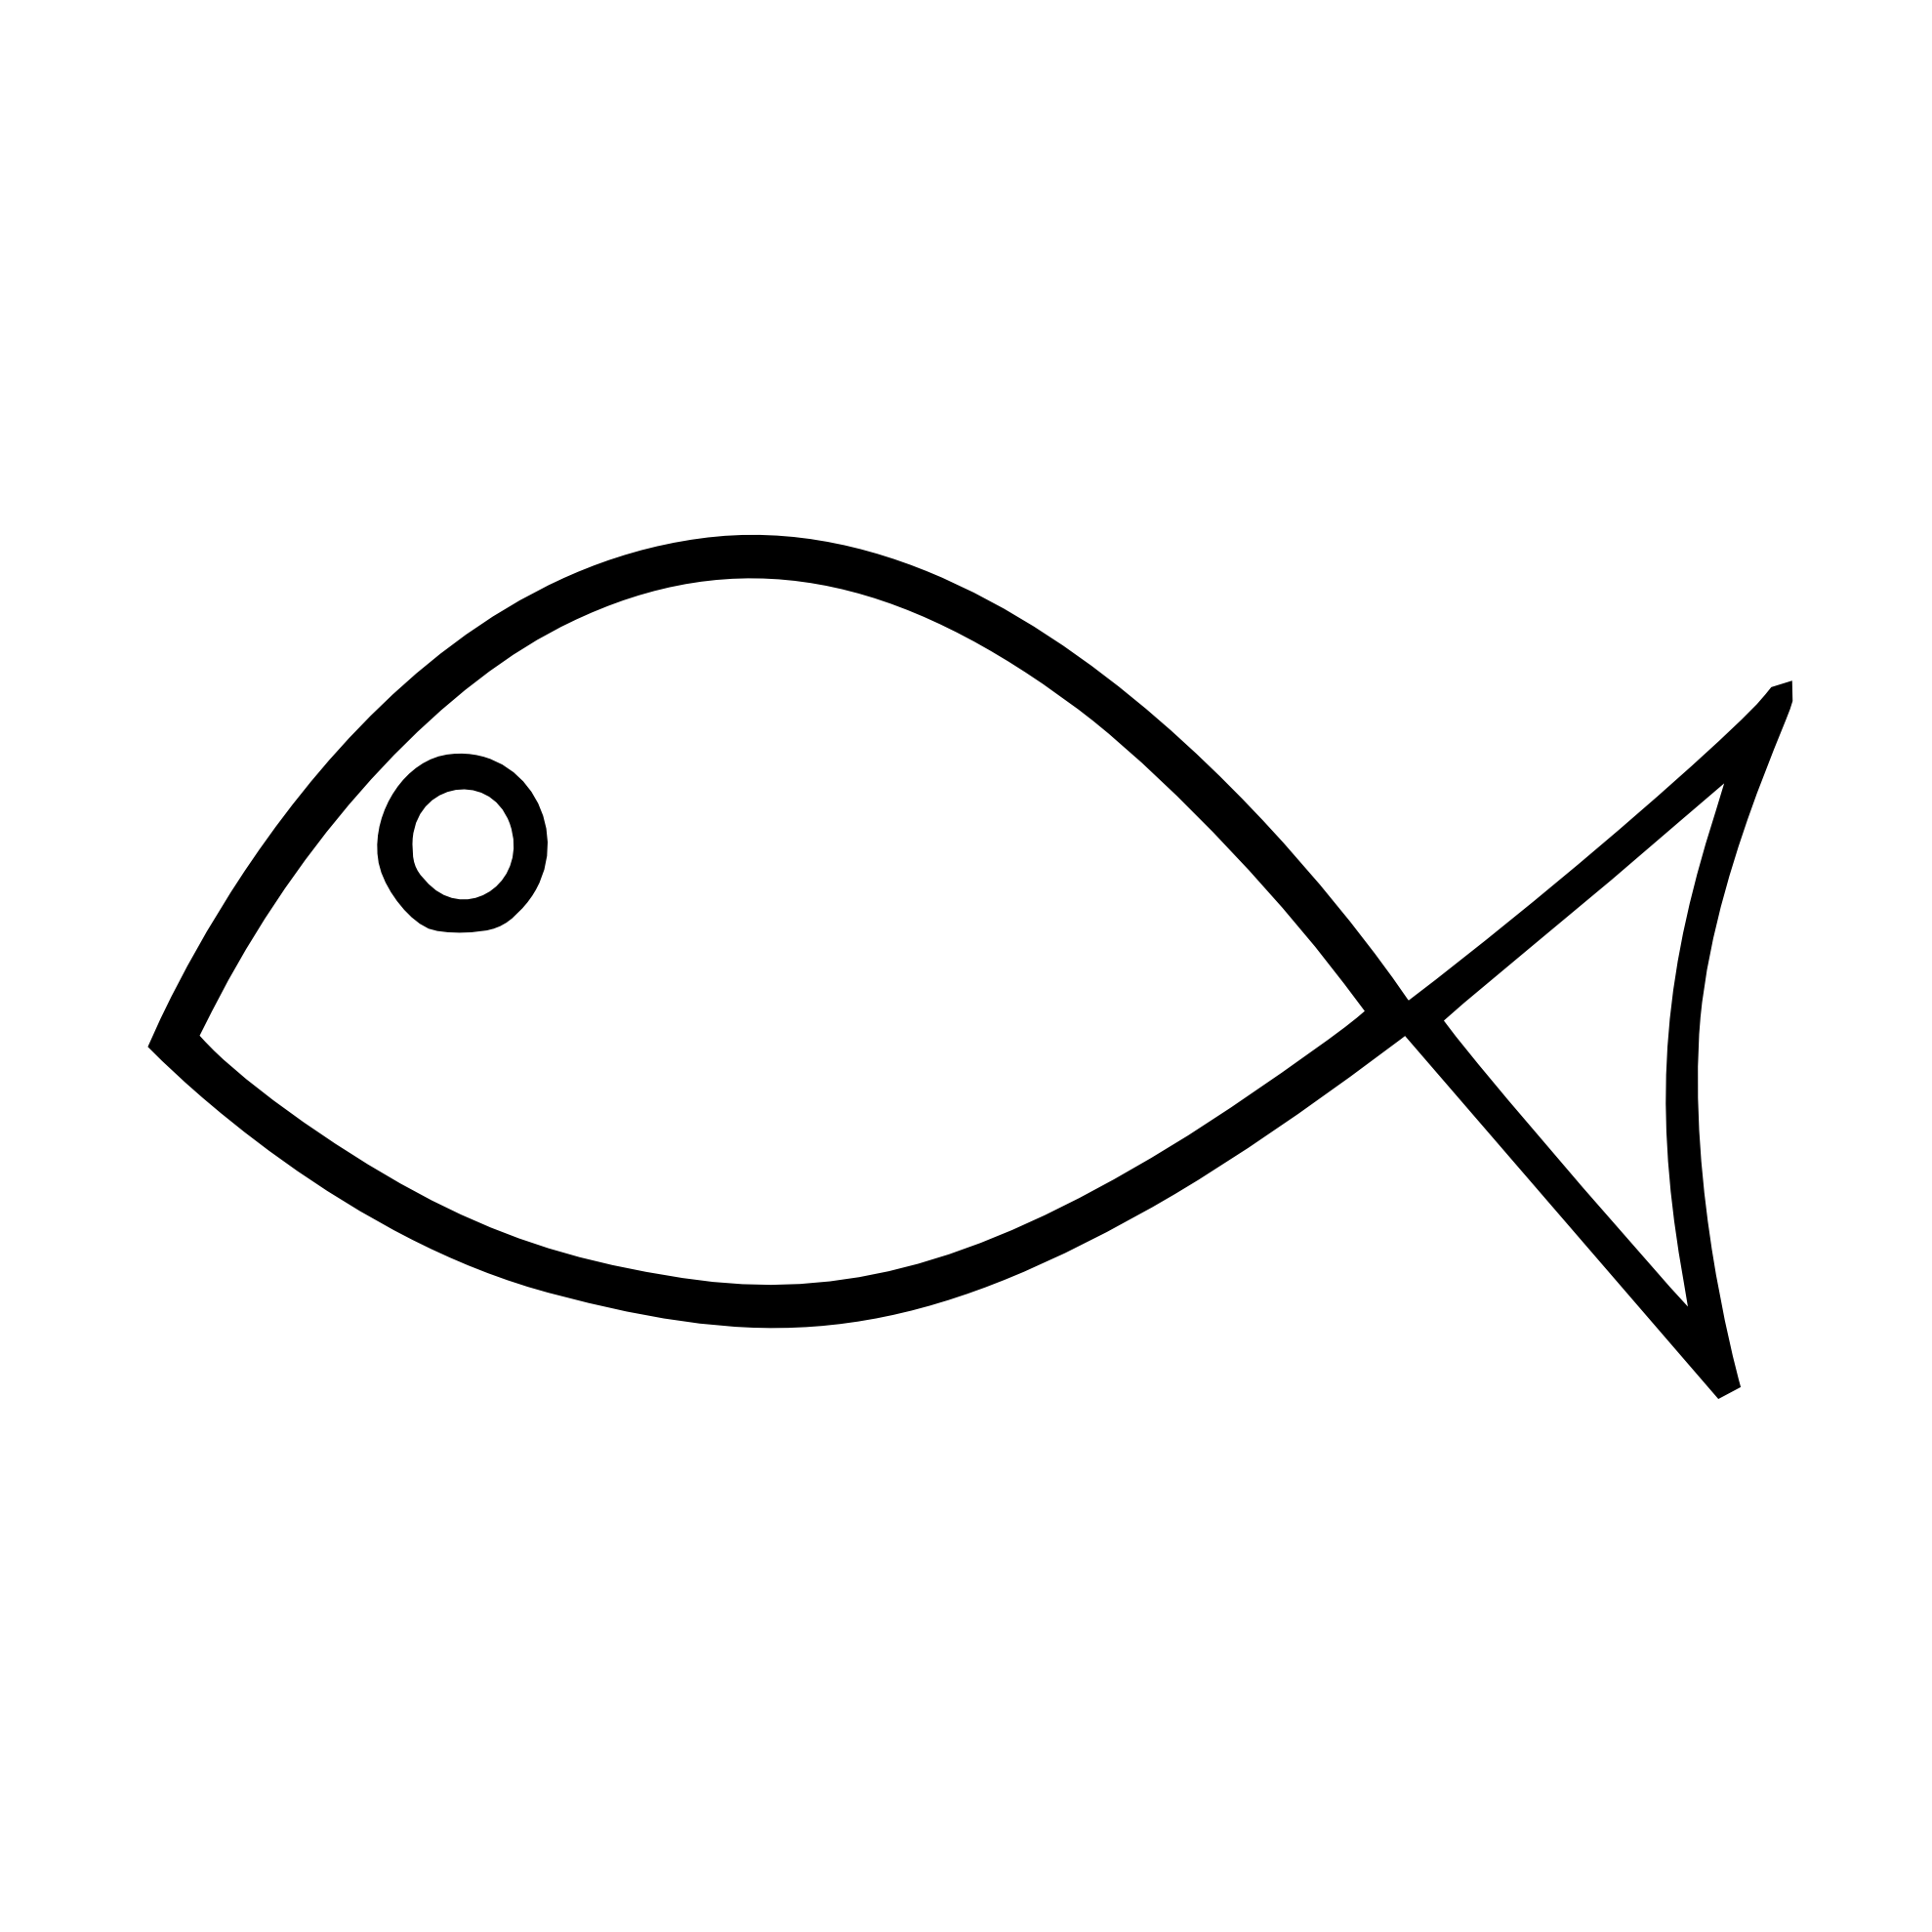 Line Drawing Of Fish : Fish outline clipart black and white panda